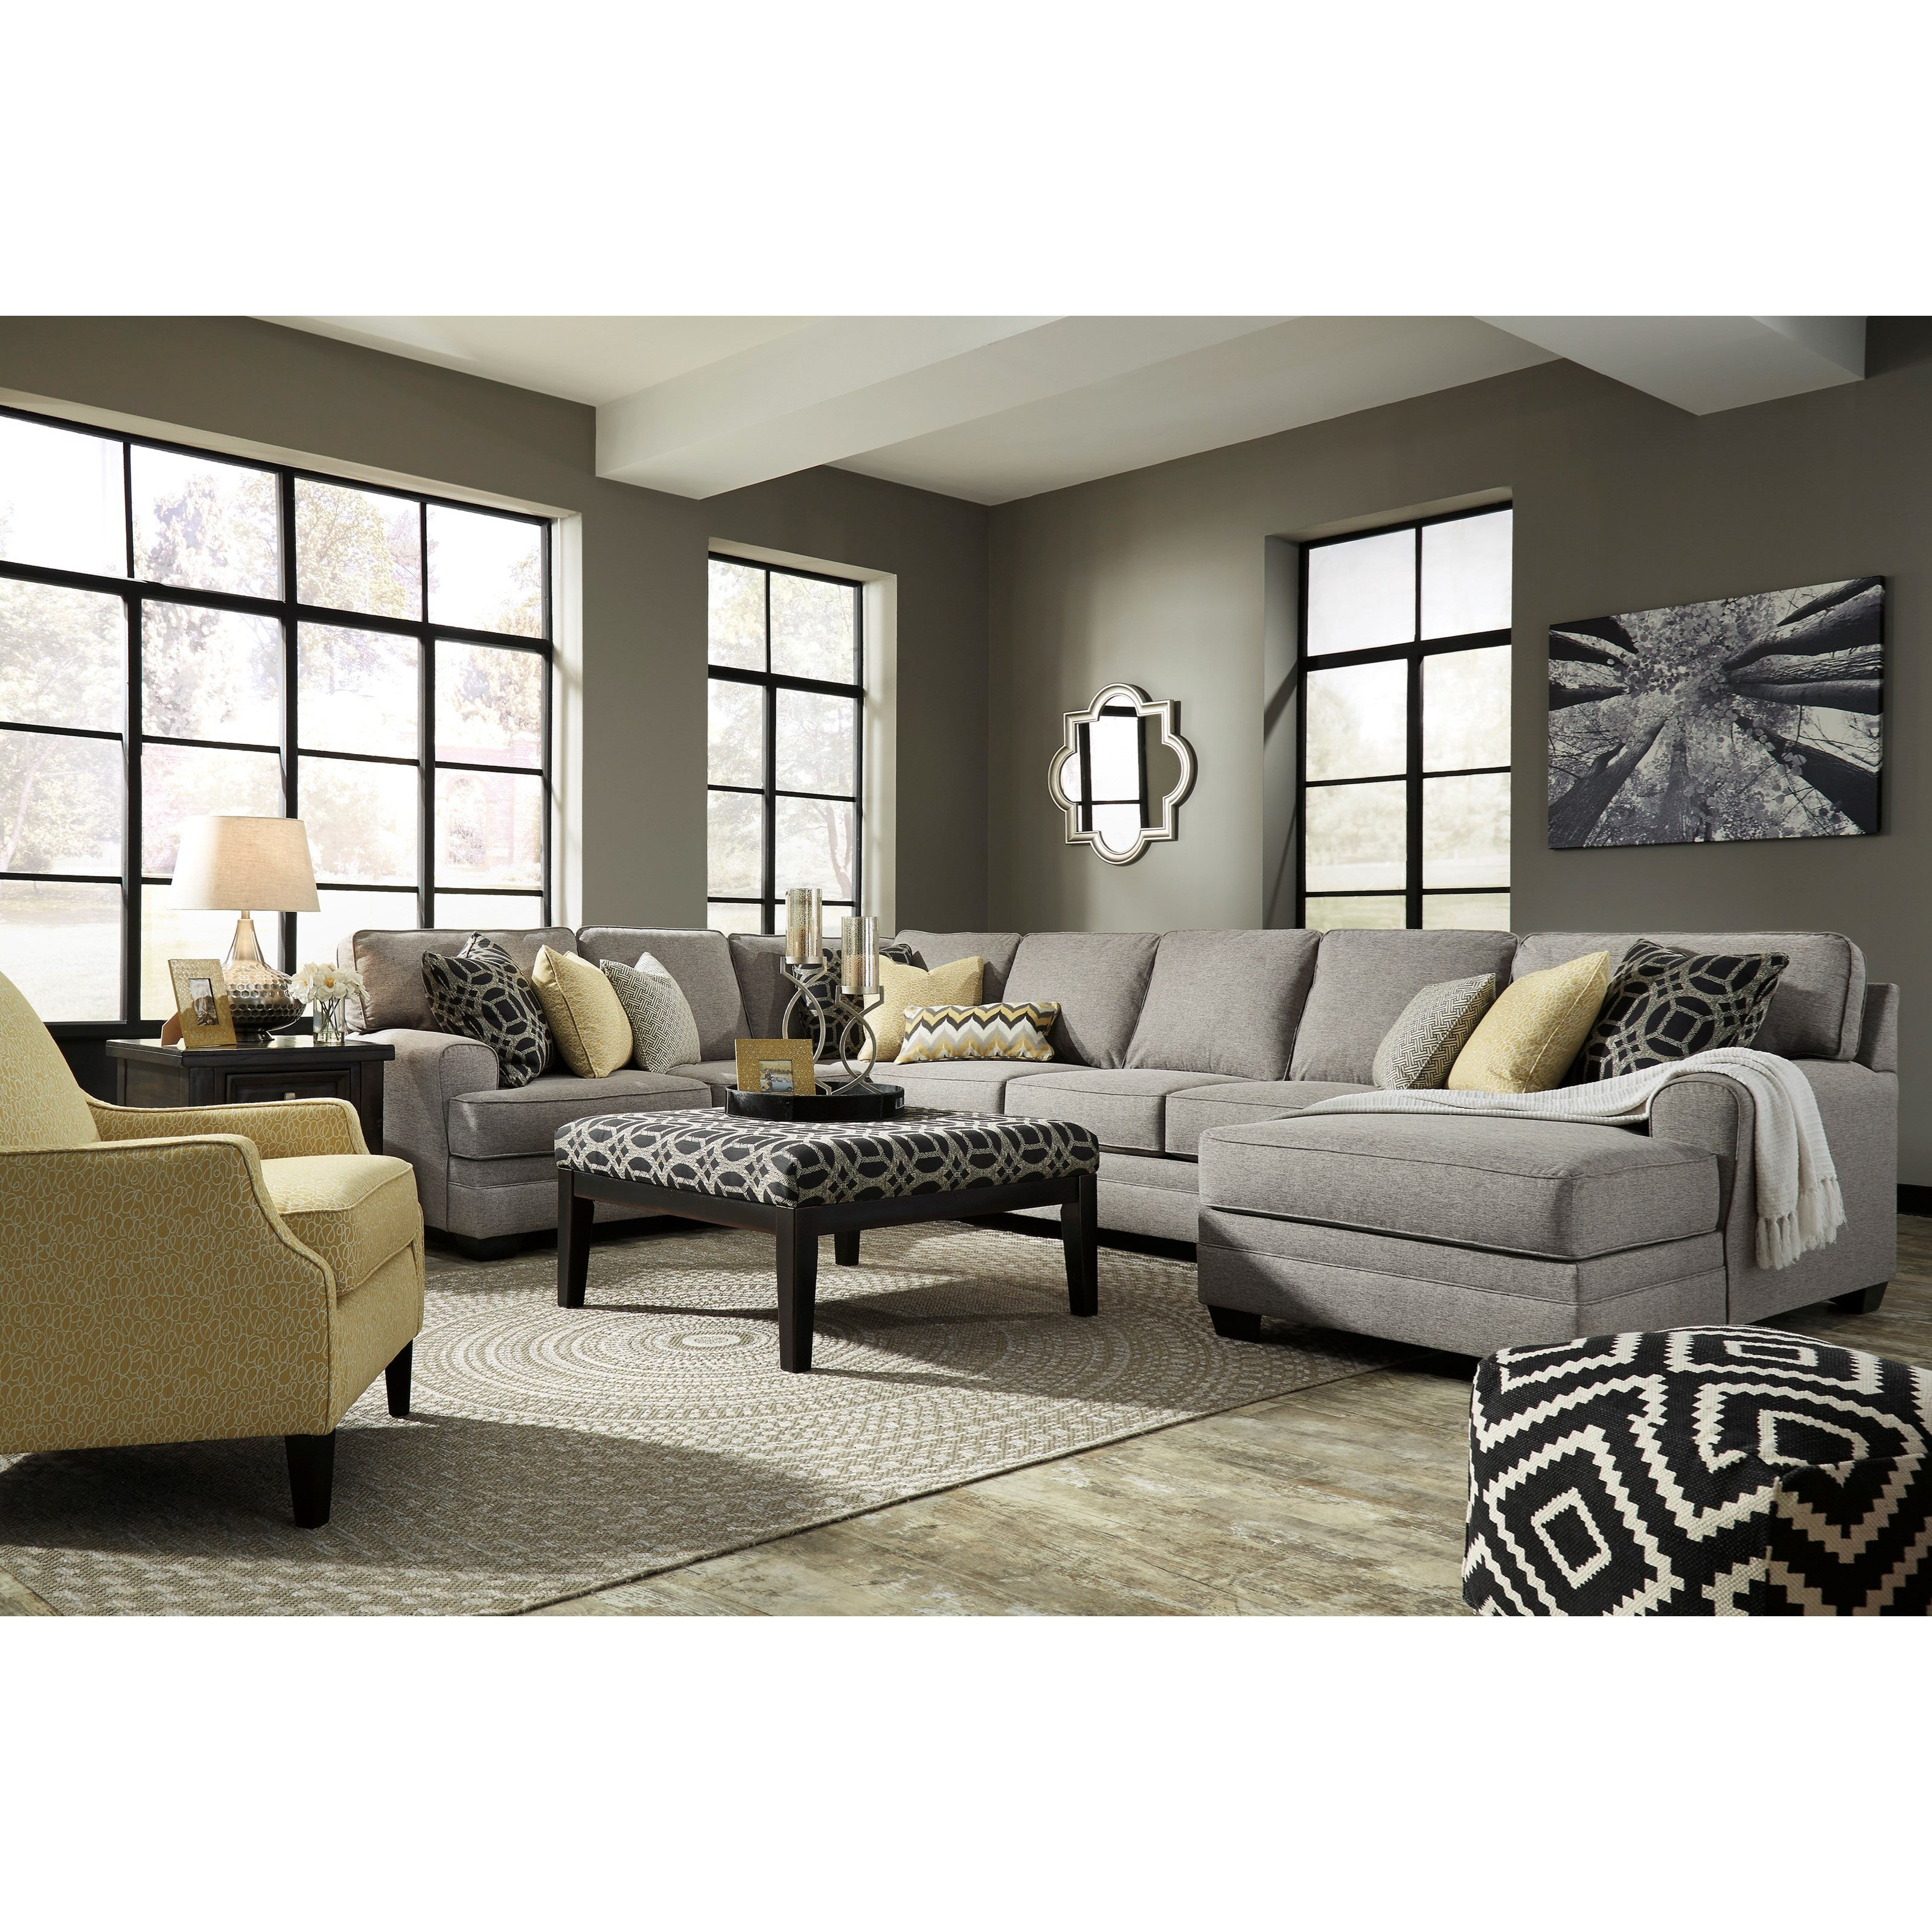 Benchcraft Cresson Stationary Living Room Group - Item Number: 54907 Living Room Group 12